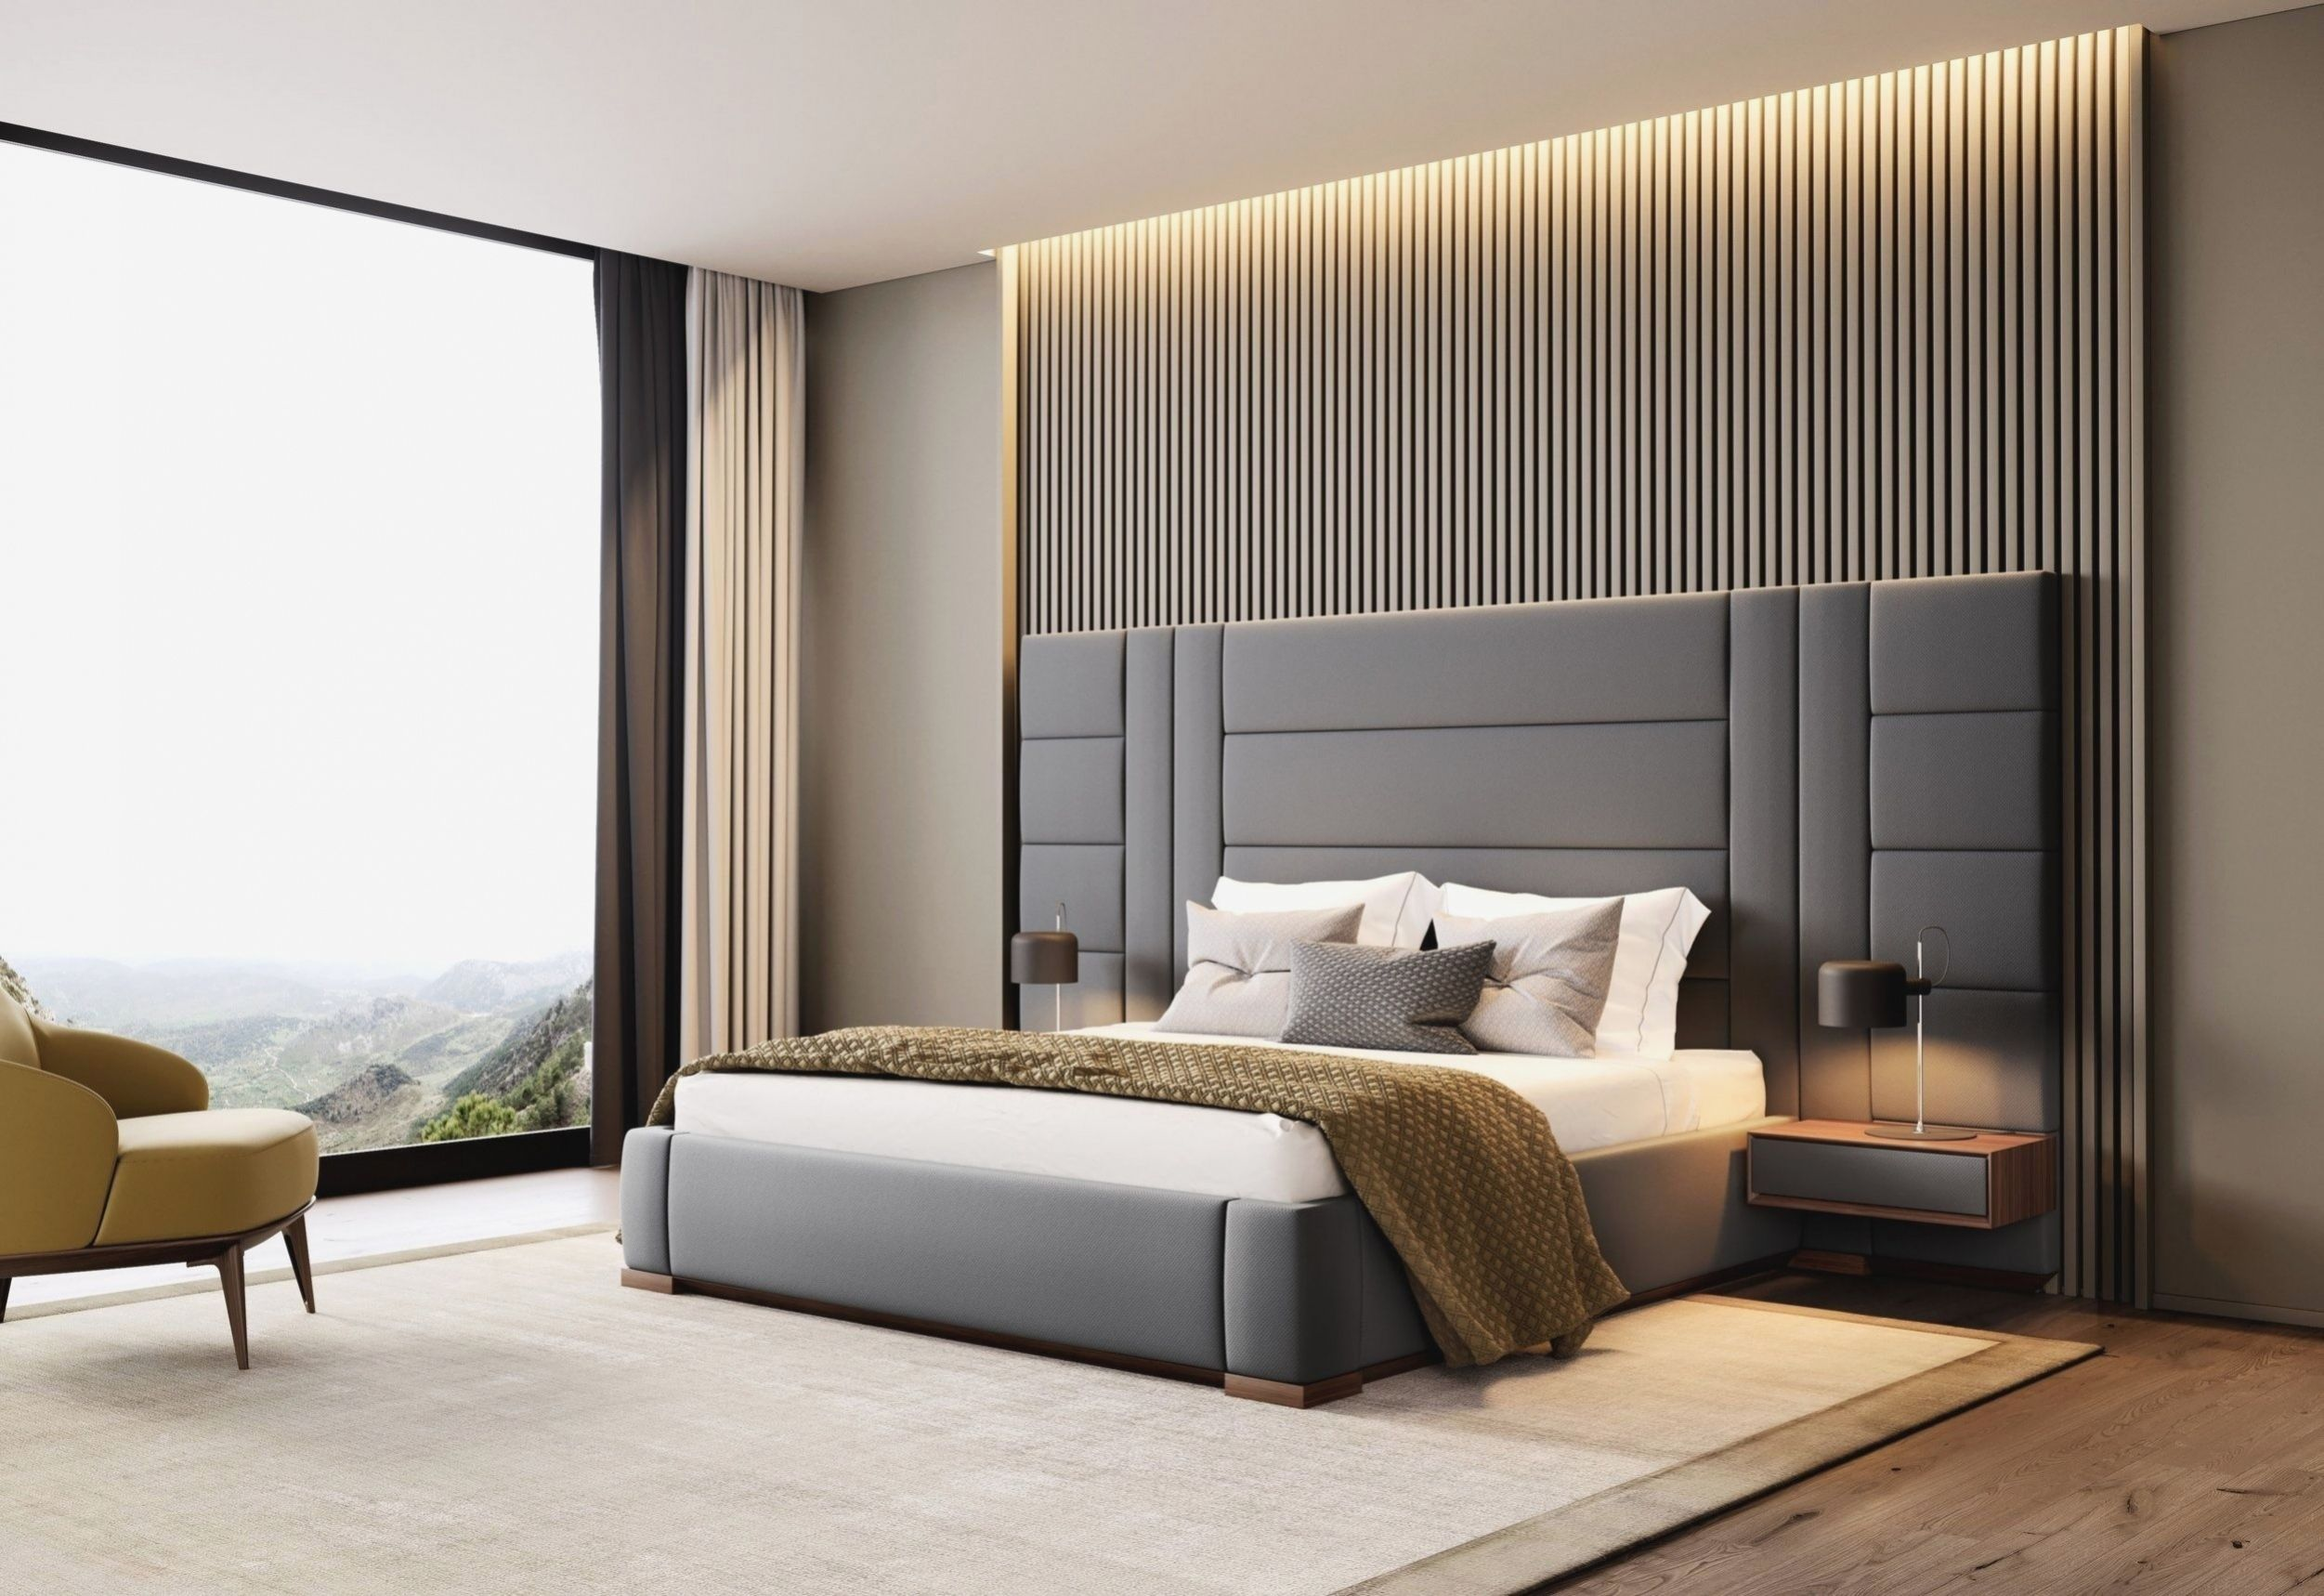 Amazon xl bed gual. in 8  Luxury master bedroom design, Modern